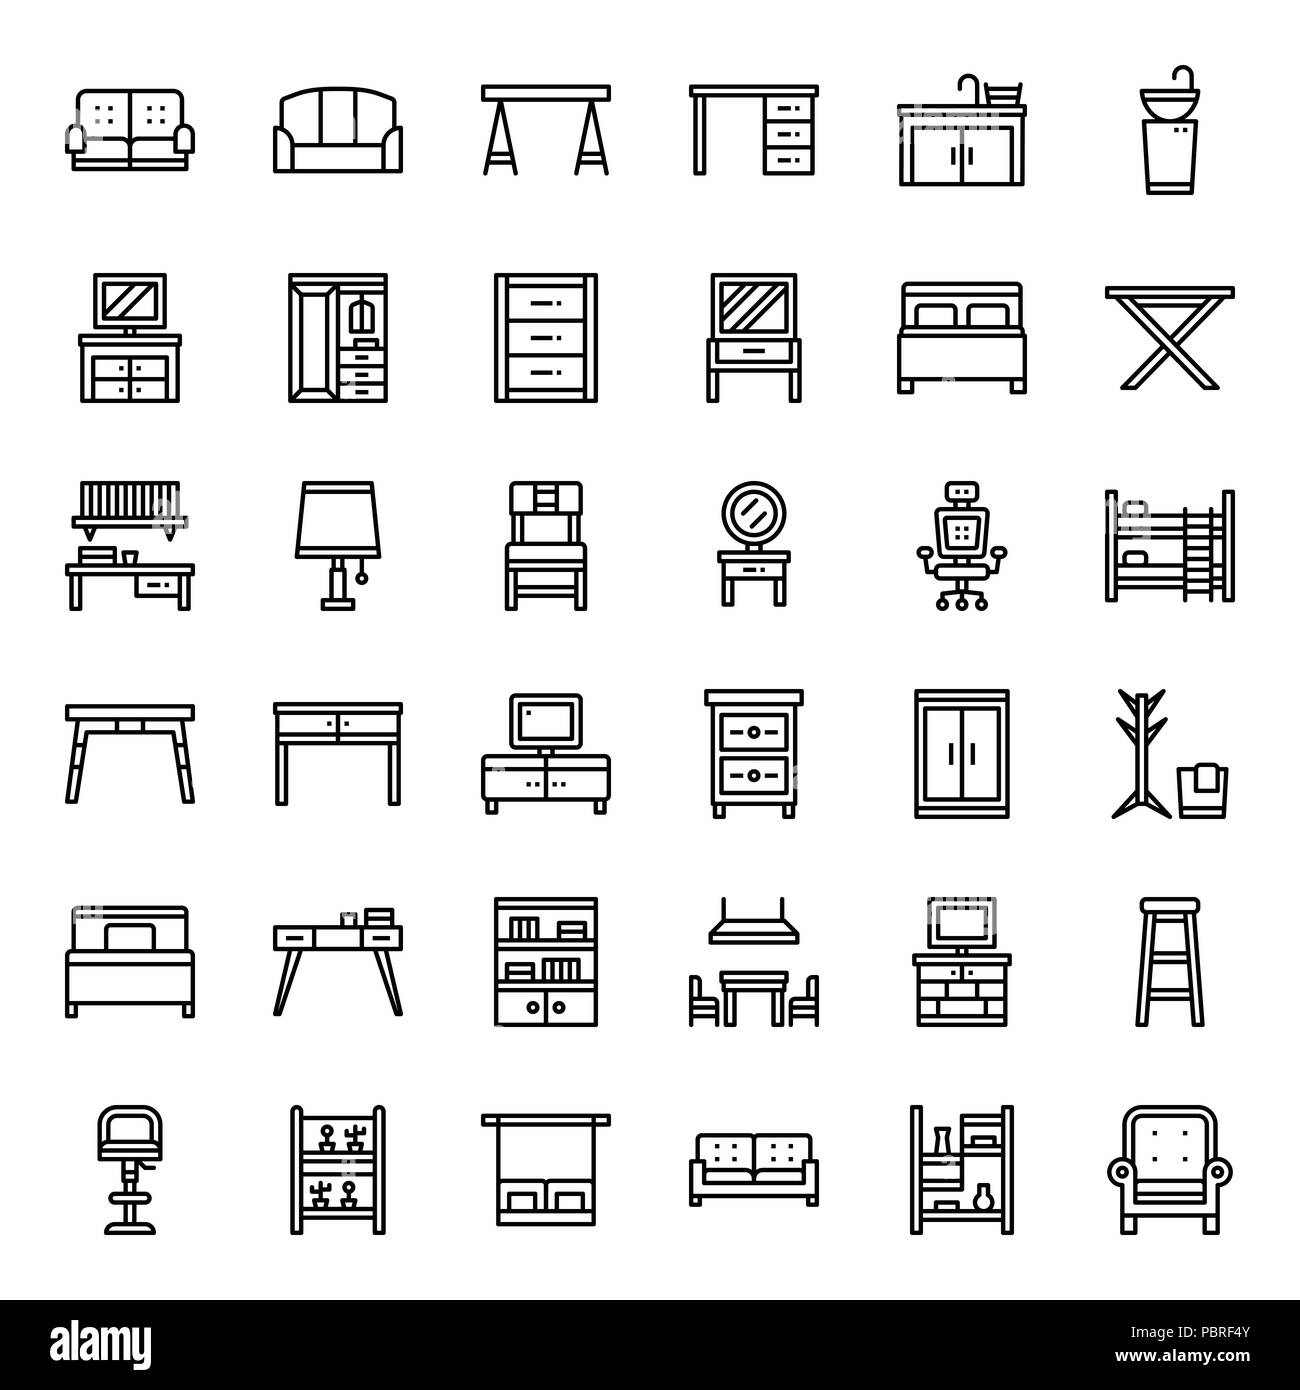 furniture outline icon, household, isolated on white background - Stock Image